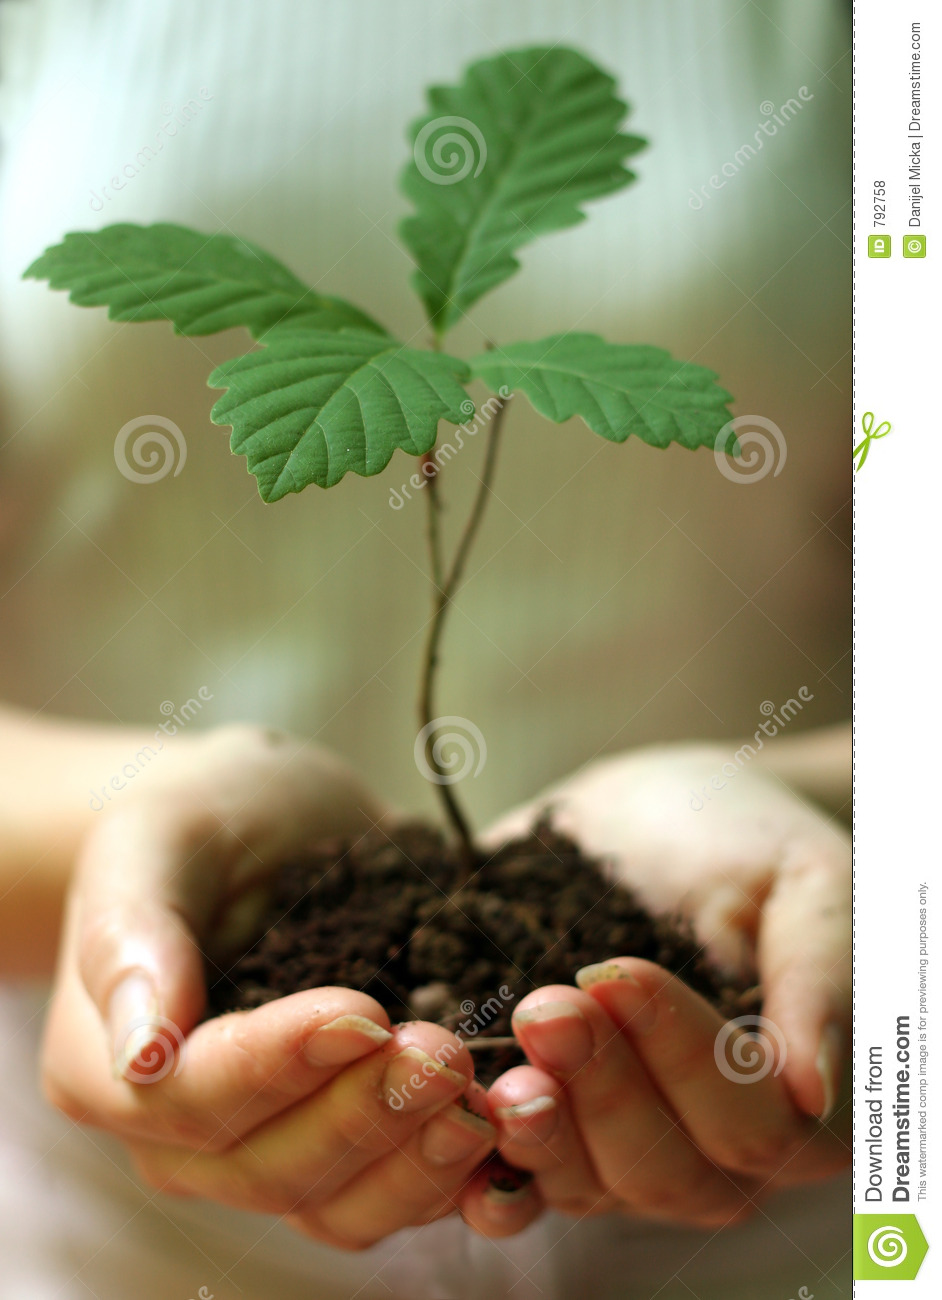 Planting trees stock photo. Image of green, tree, forest ...